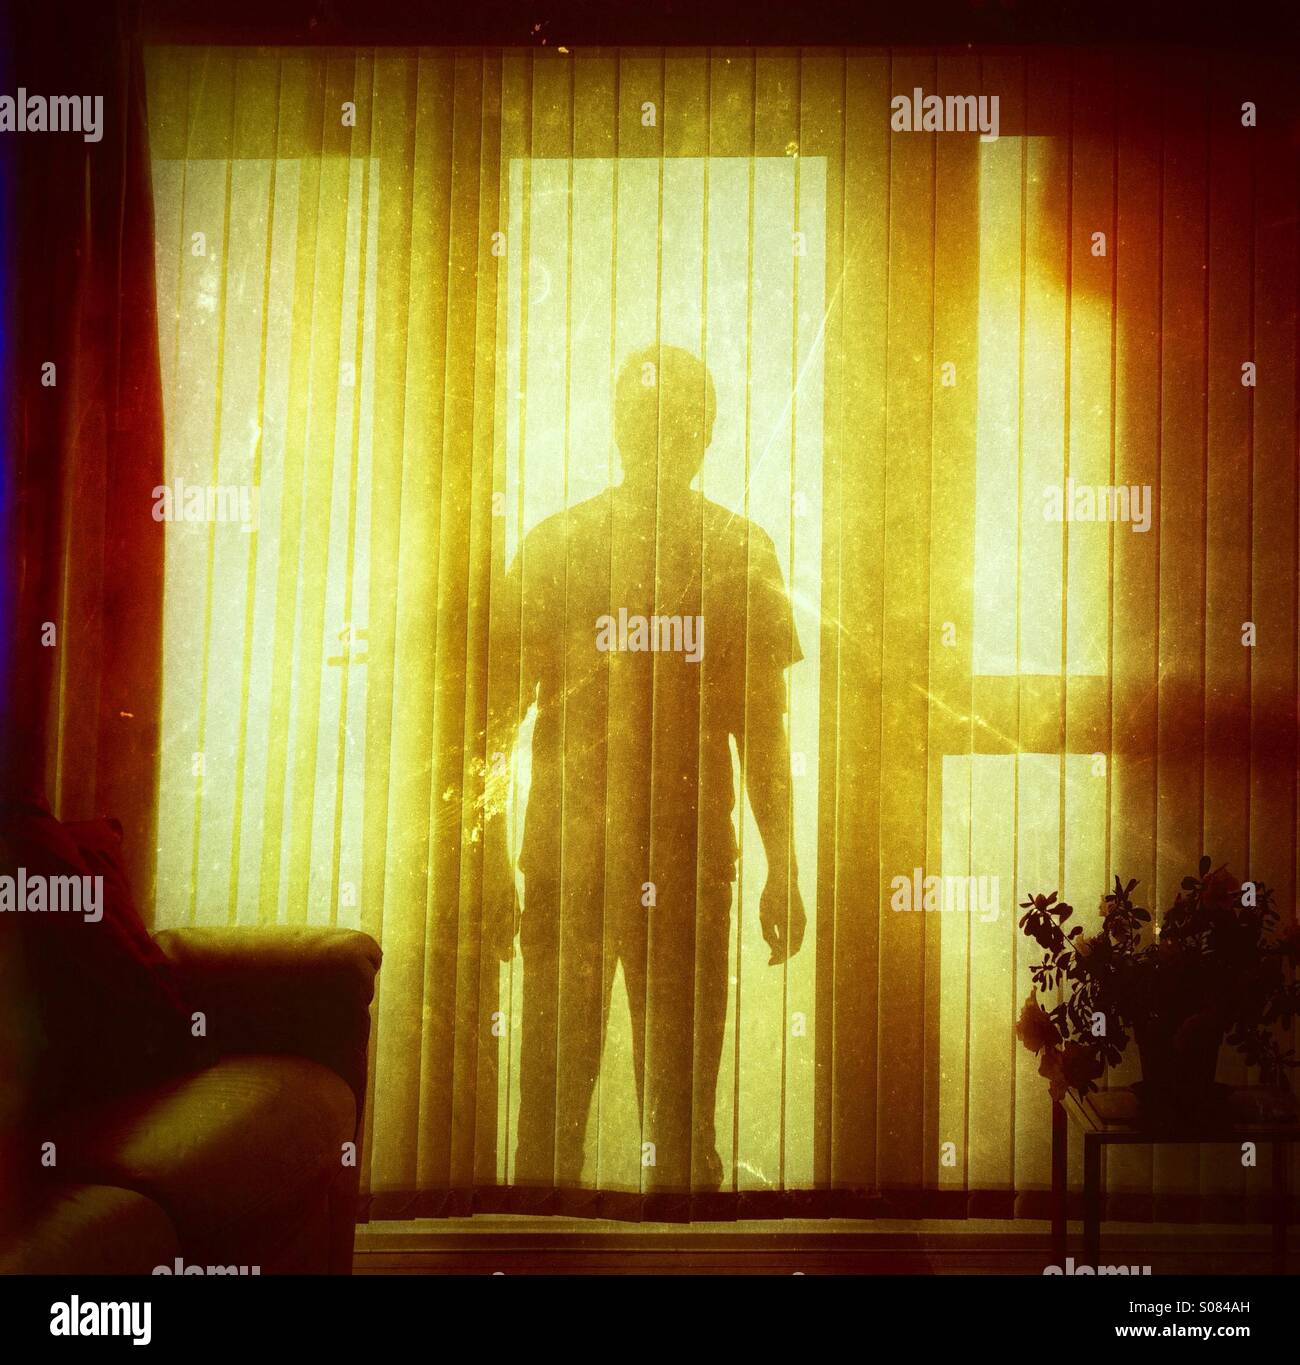 Shadowy figure at the window - Stock Image